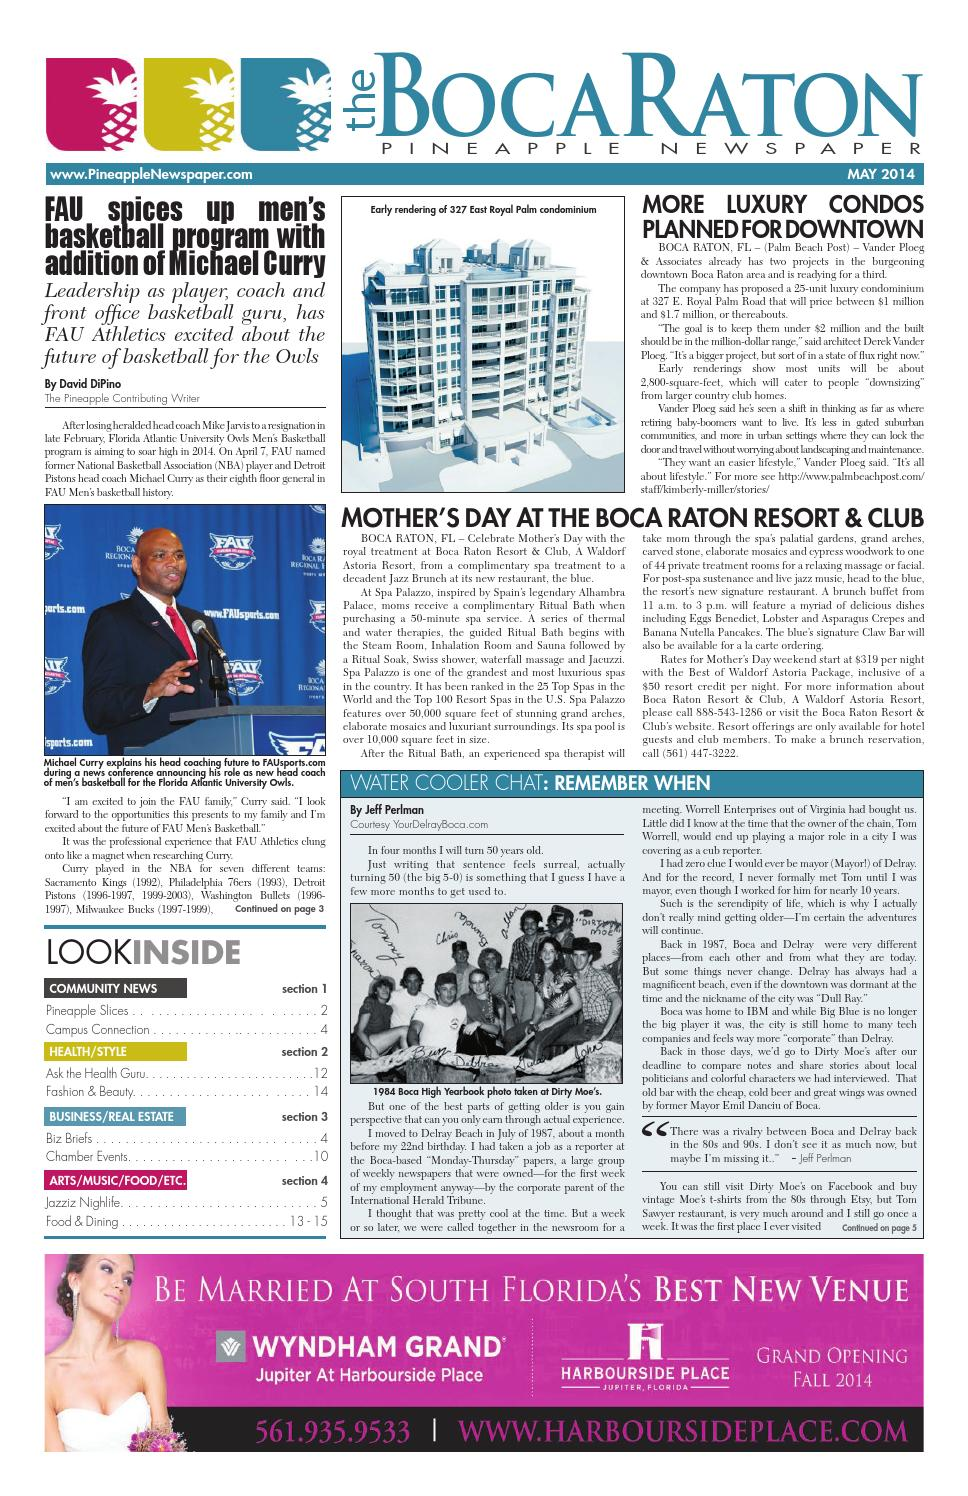 The boca raton pineapple may 2014 by four story media group issuu fandeluxe Gallery